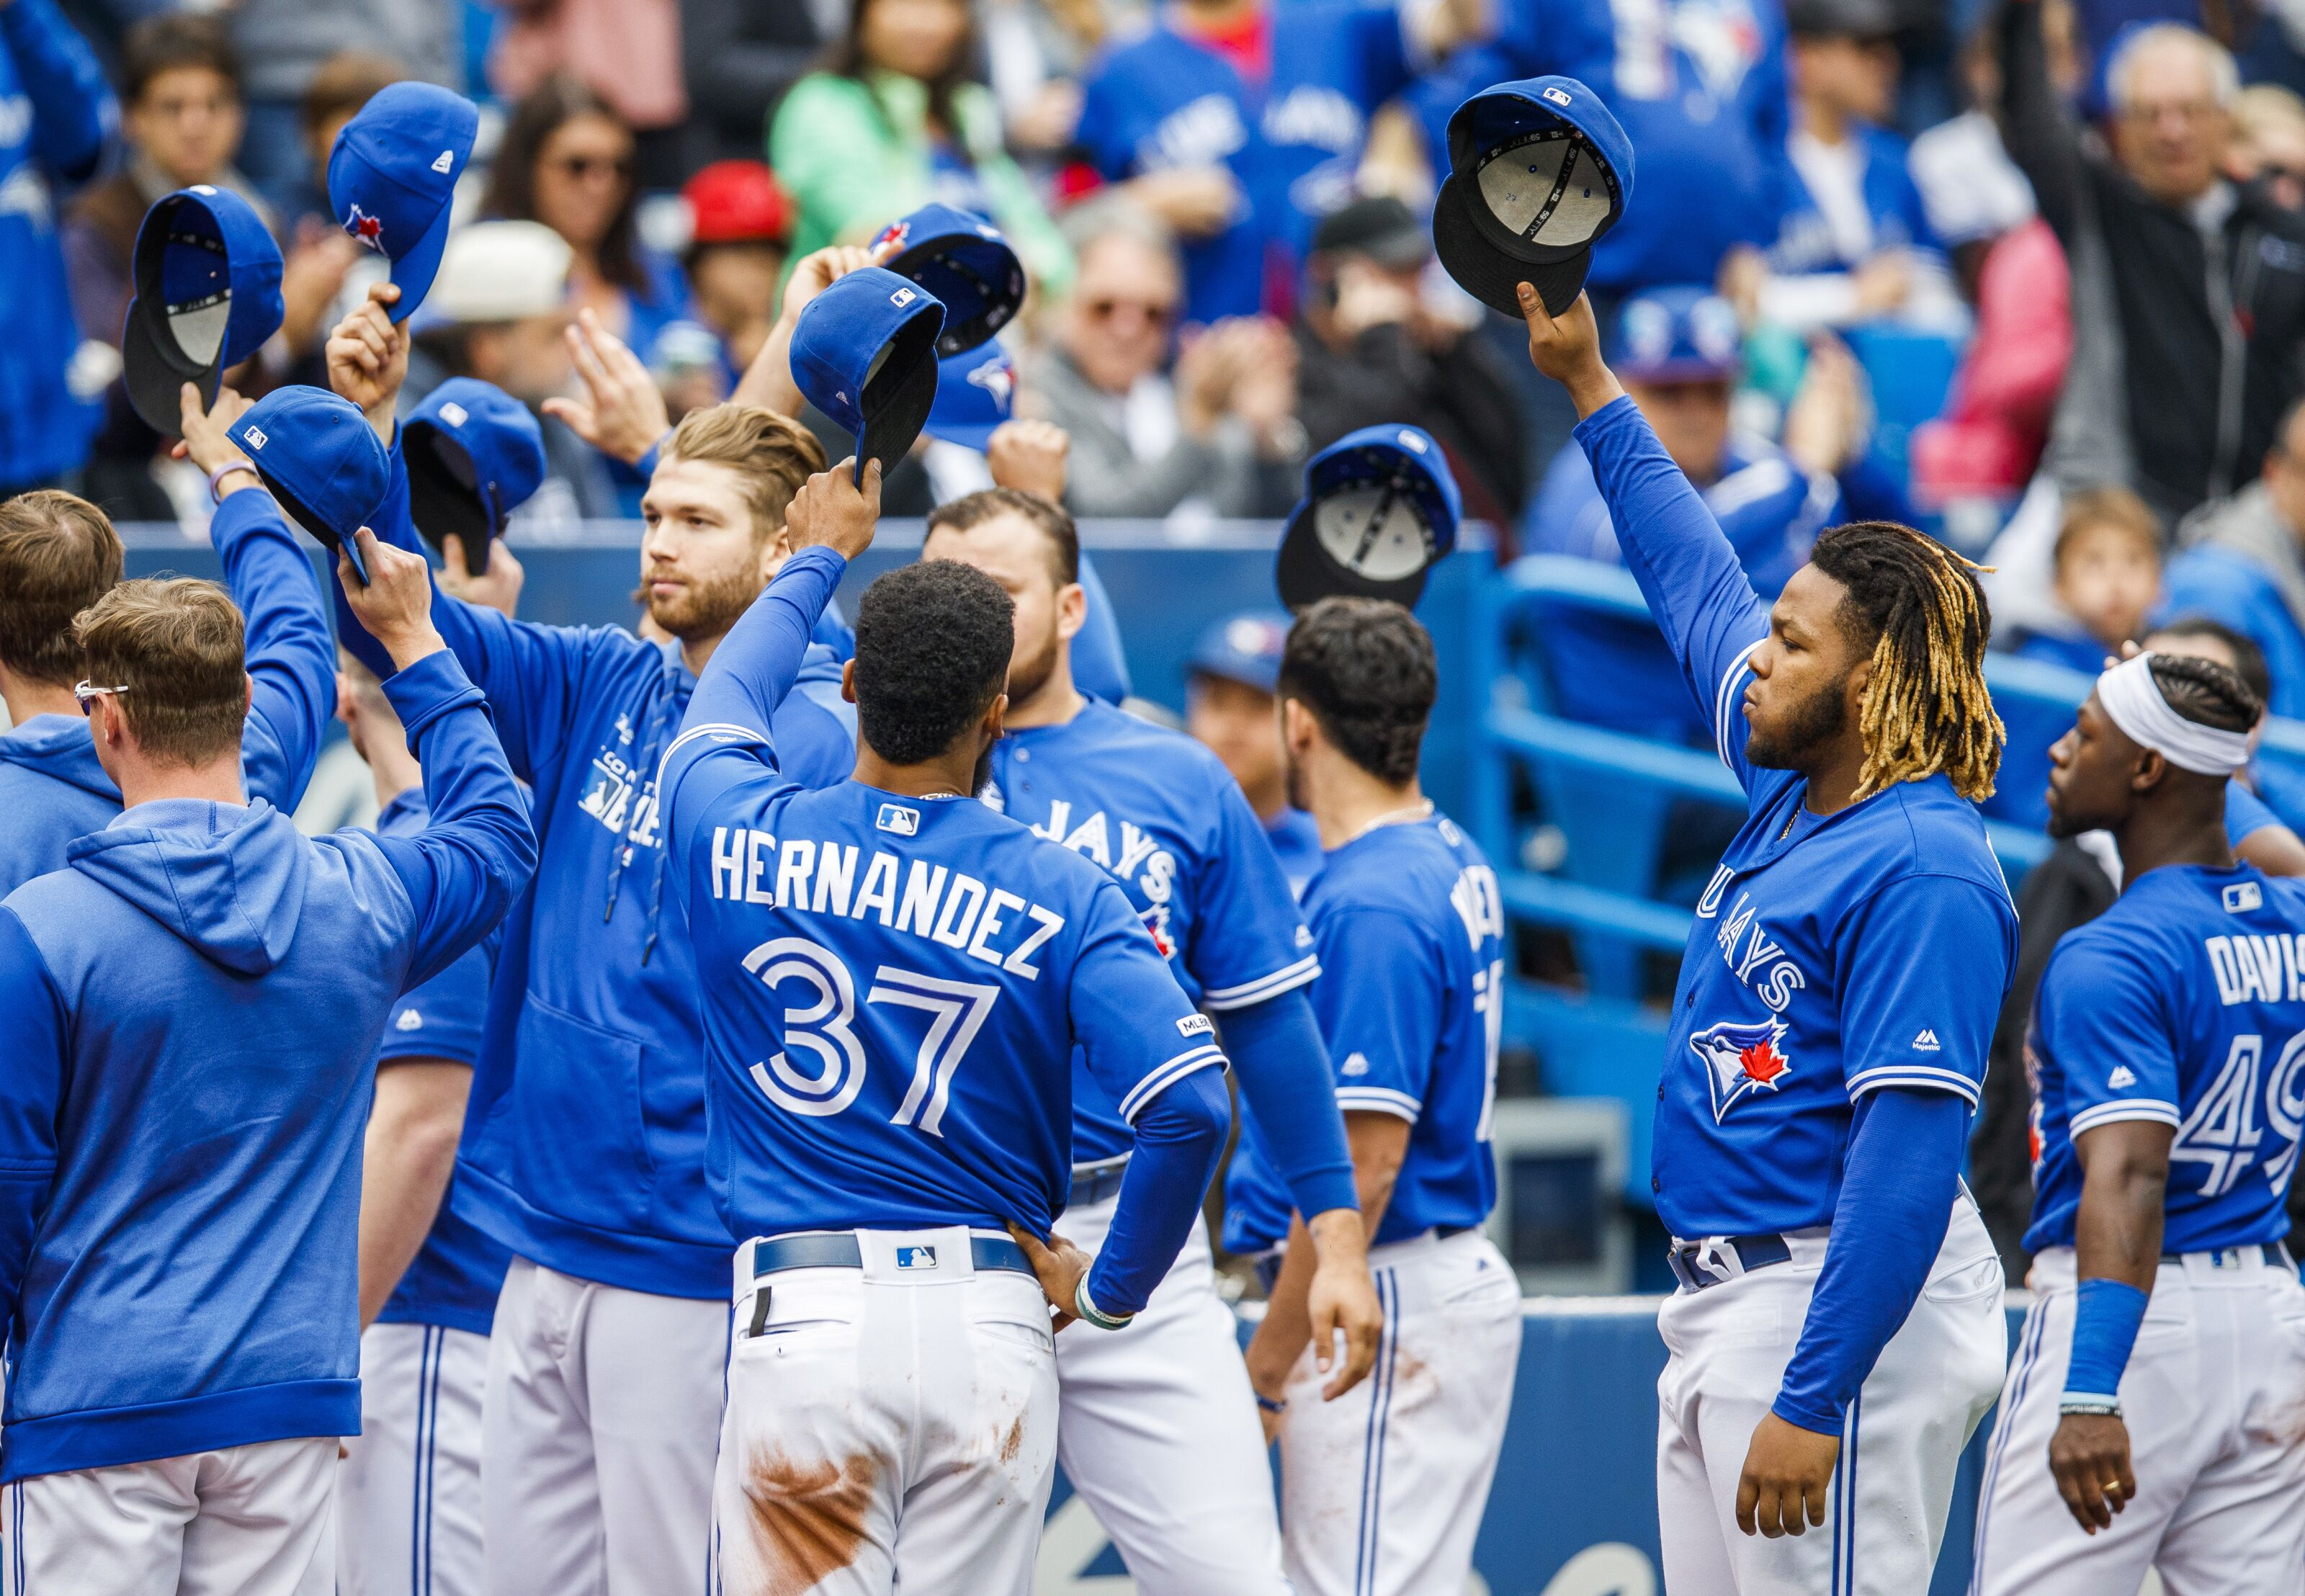 Toronto Blue Jays: I owe the front office an apology